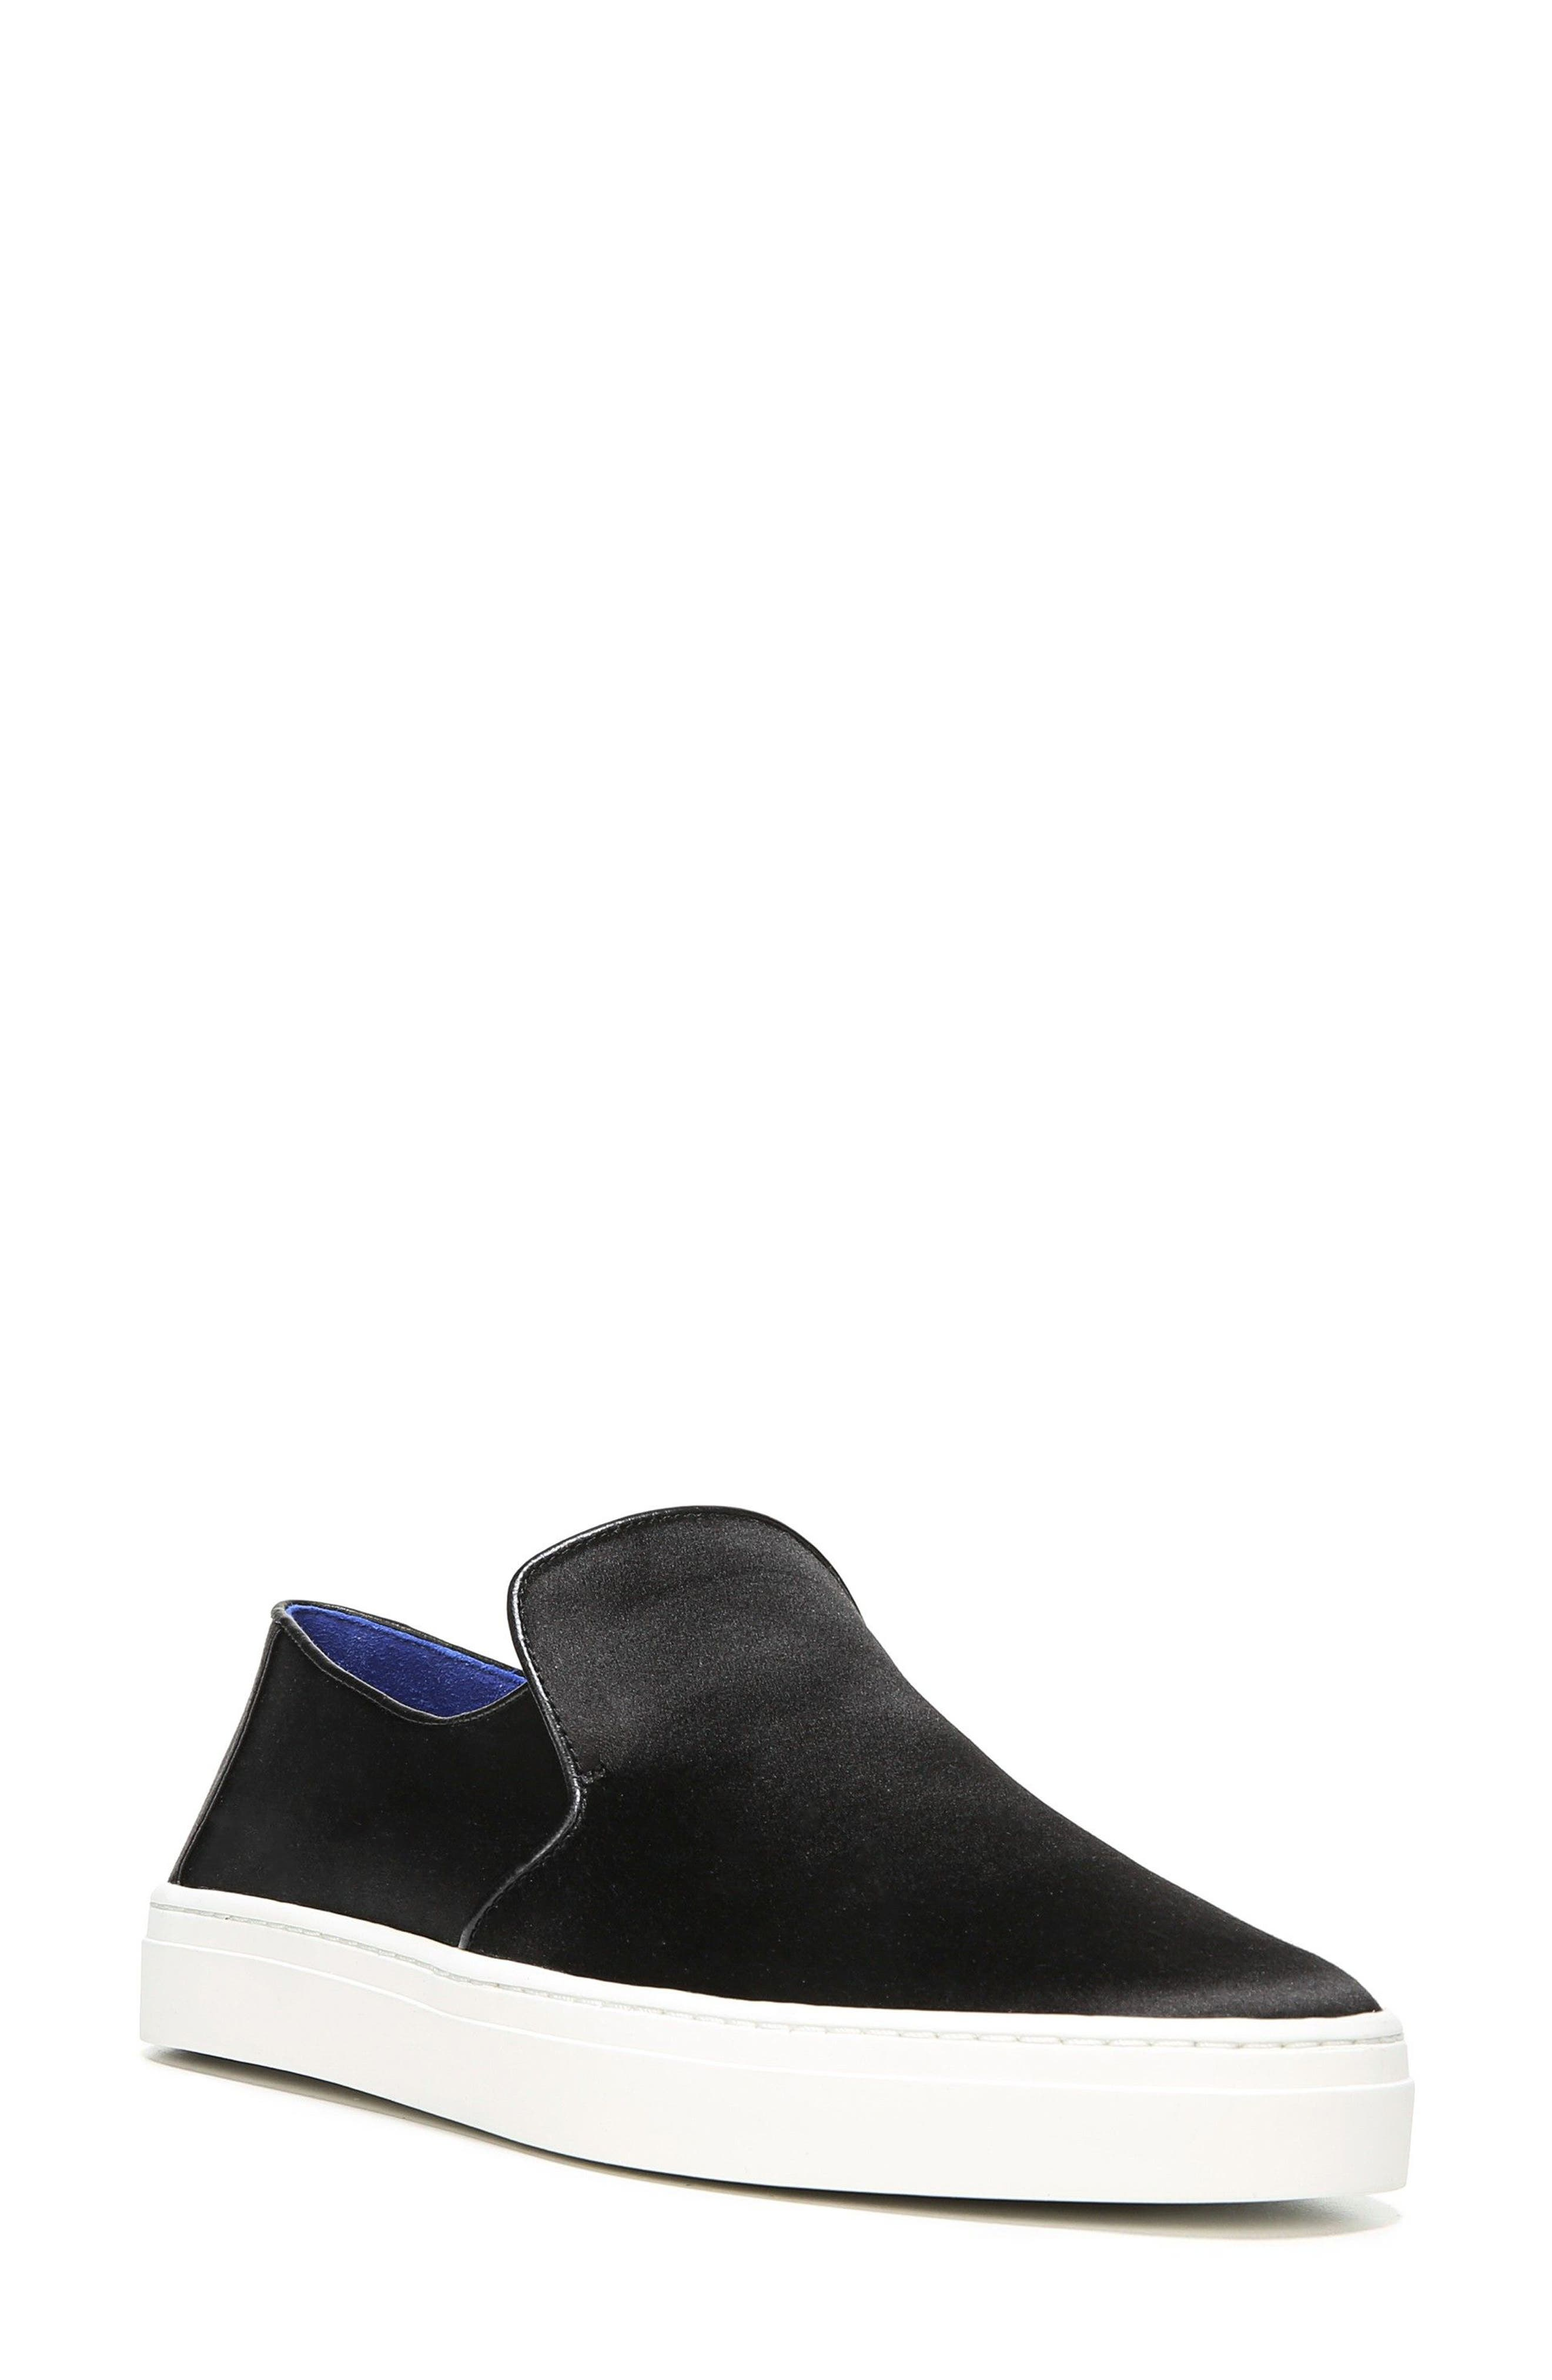 Alternate Image 1 Selected - Diane von Furstenberg Budapest Slip-On Sneaker (Women)